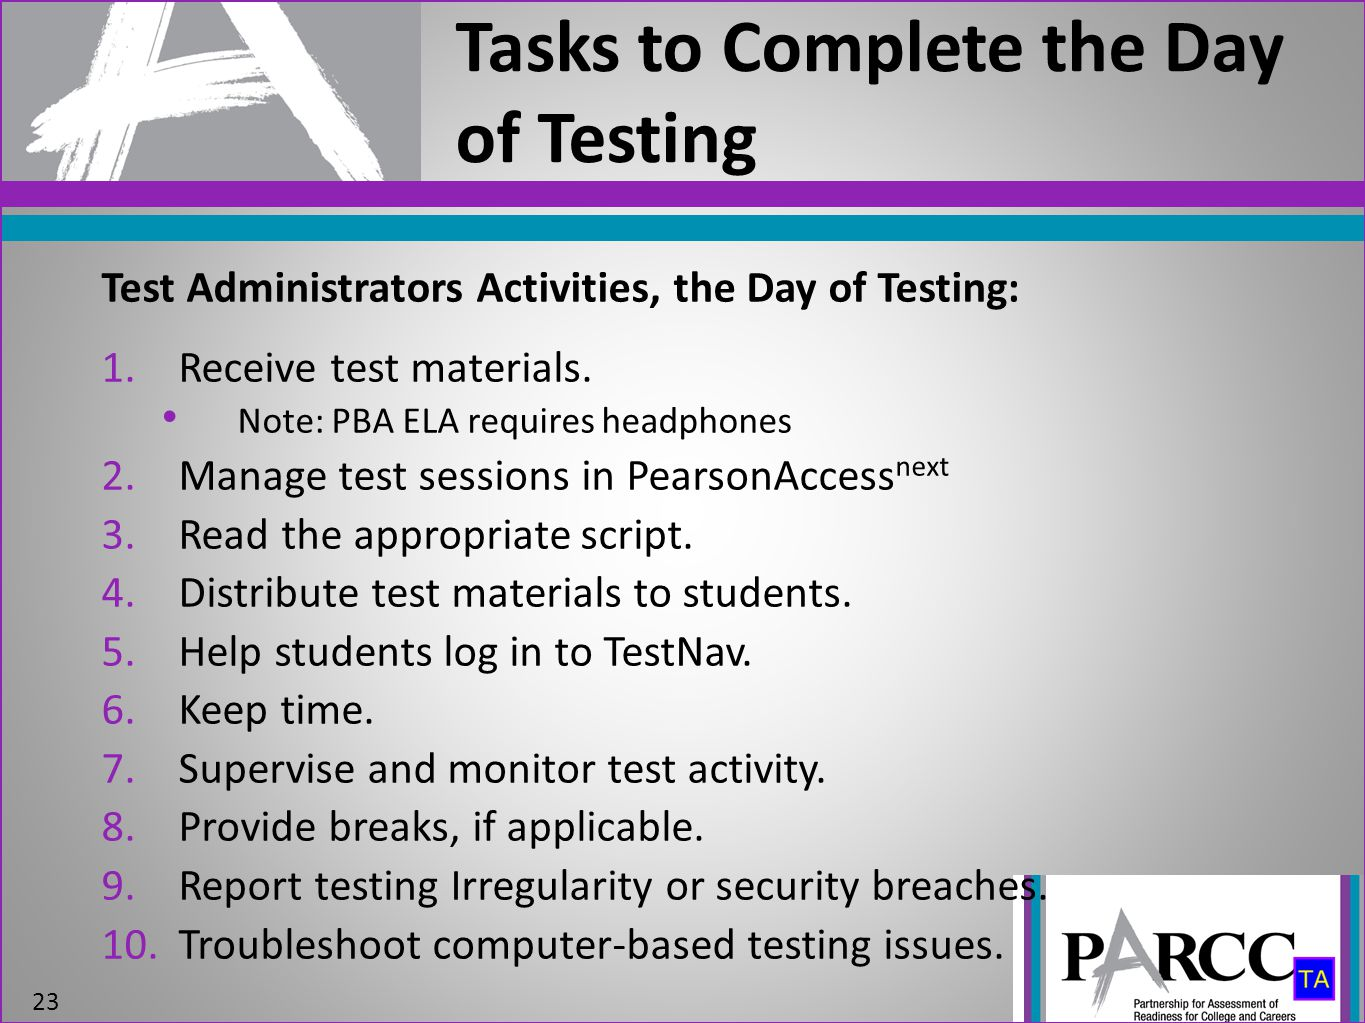 Tasks to Complete the Day of Testing